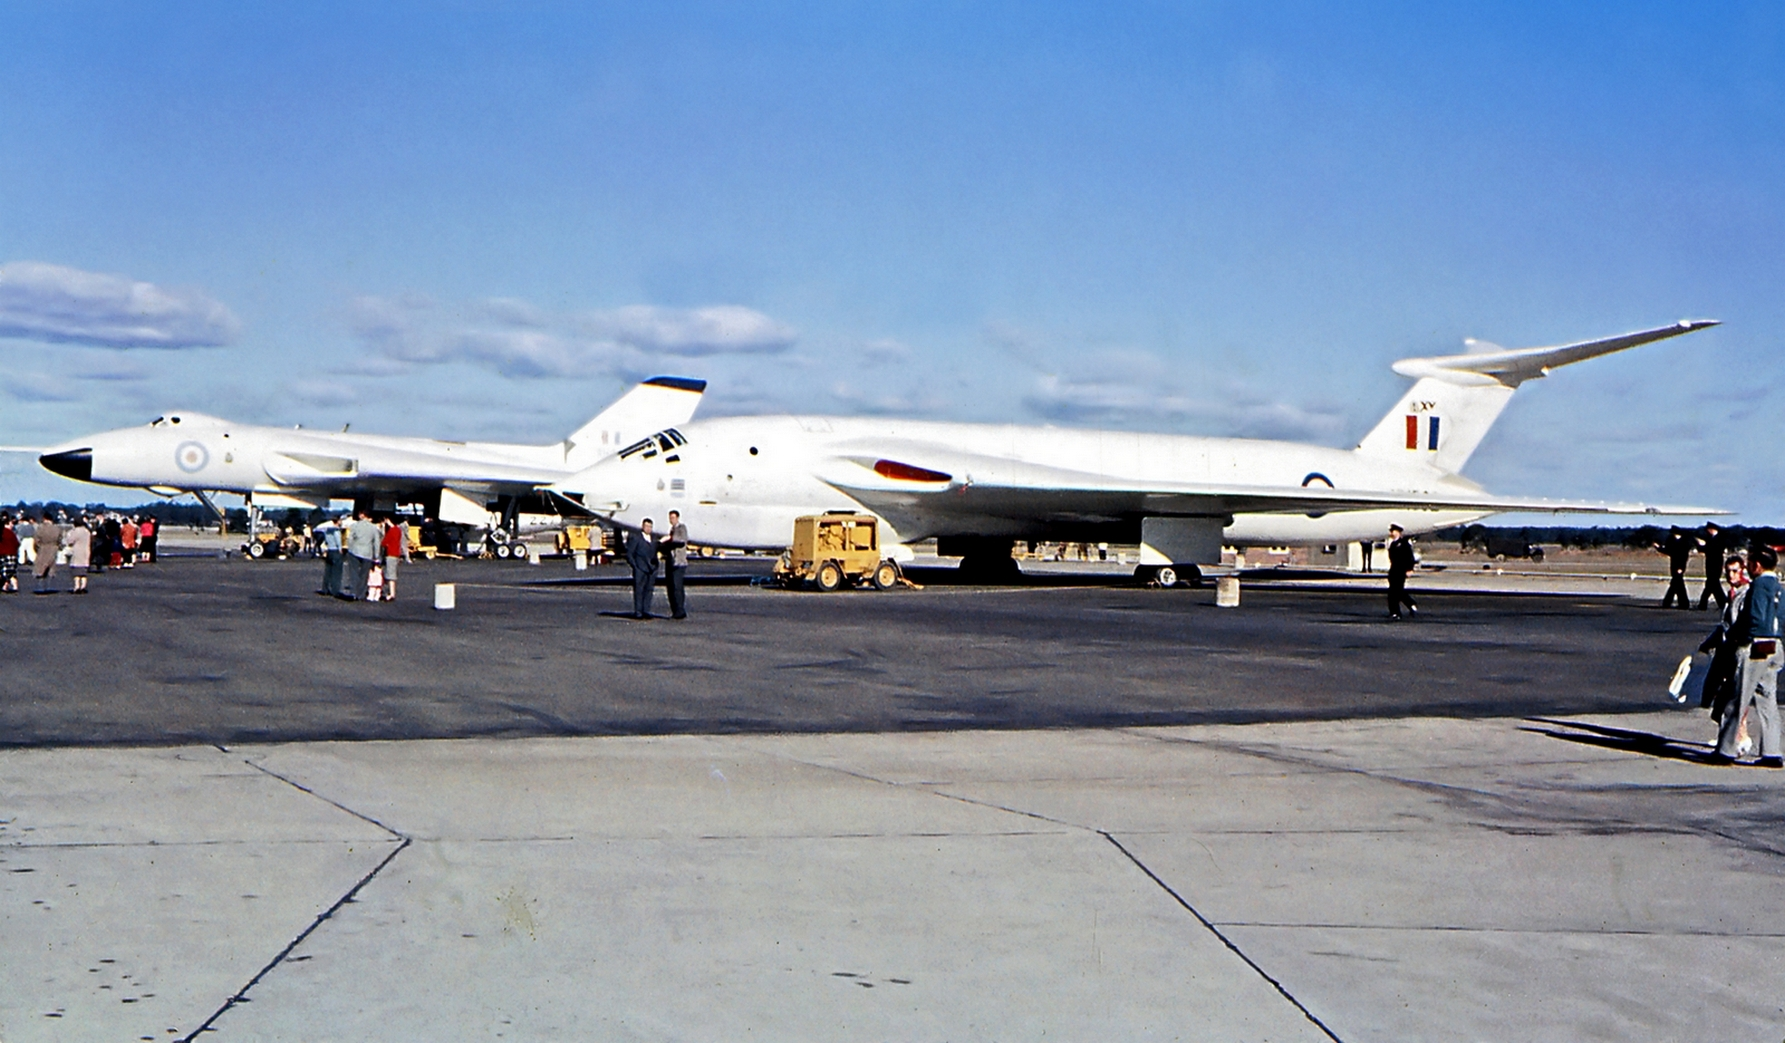 Avro Vulcan and Handley Page Victor bombers at Richmond, New South Wales, air show.